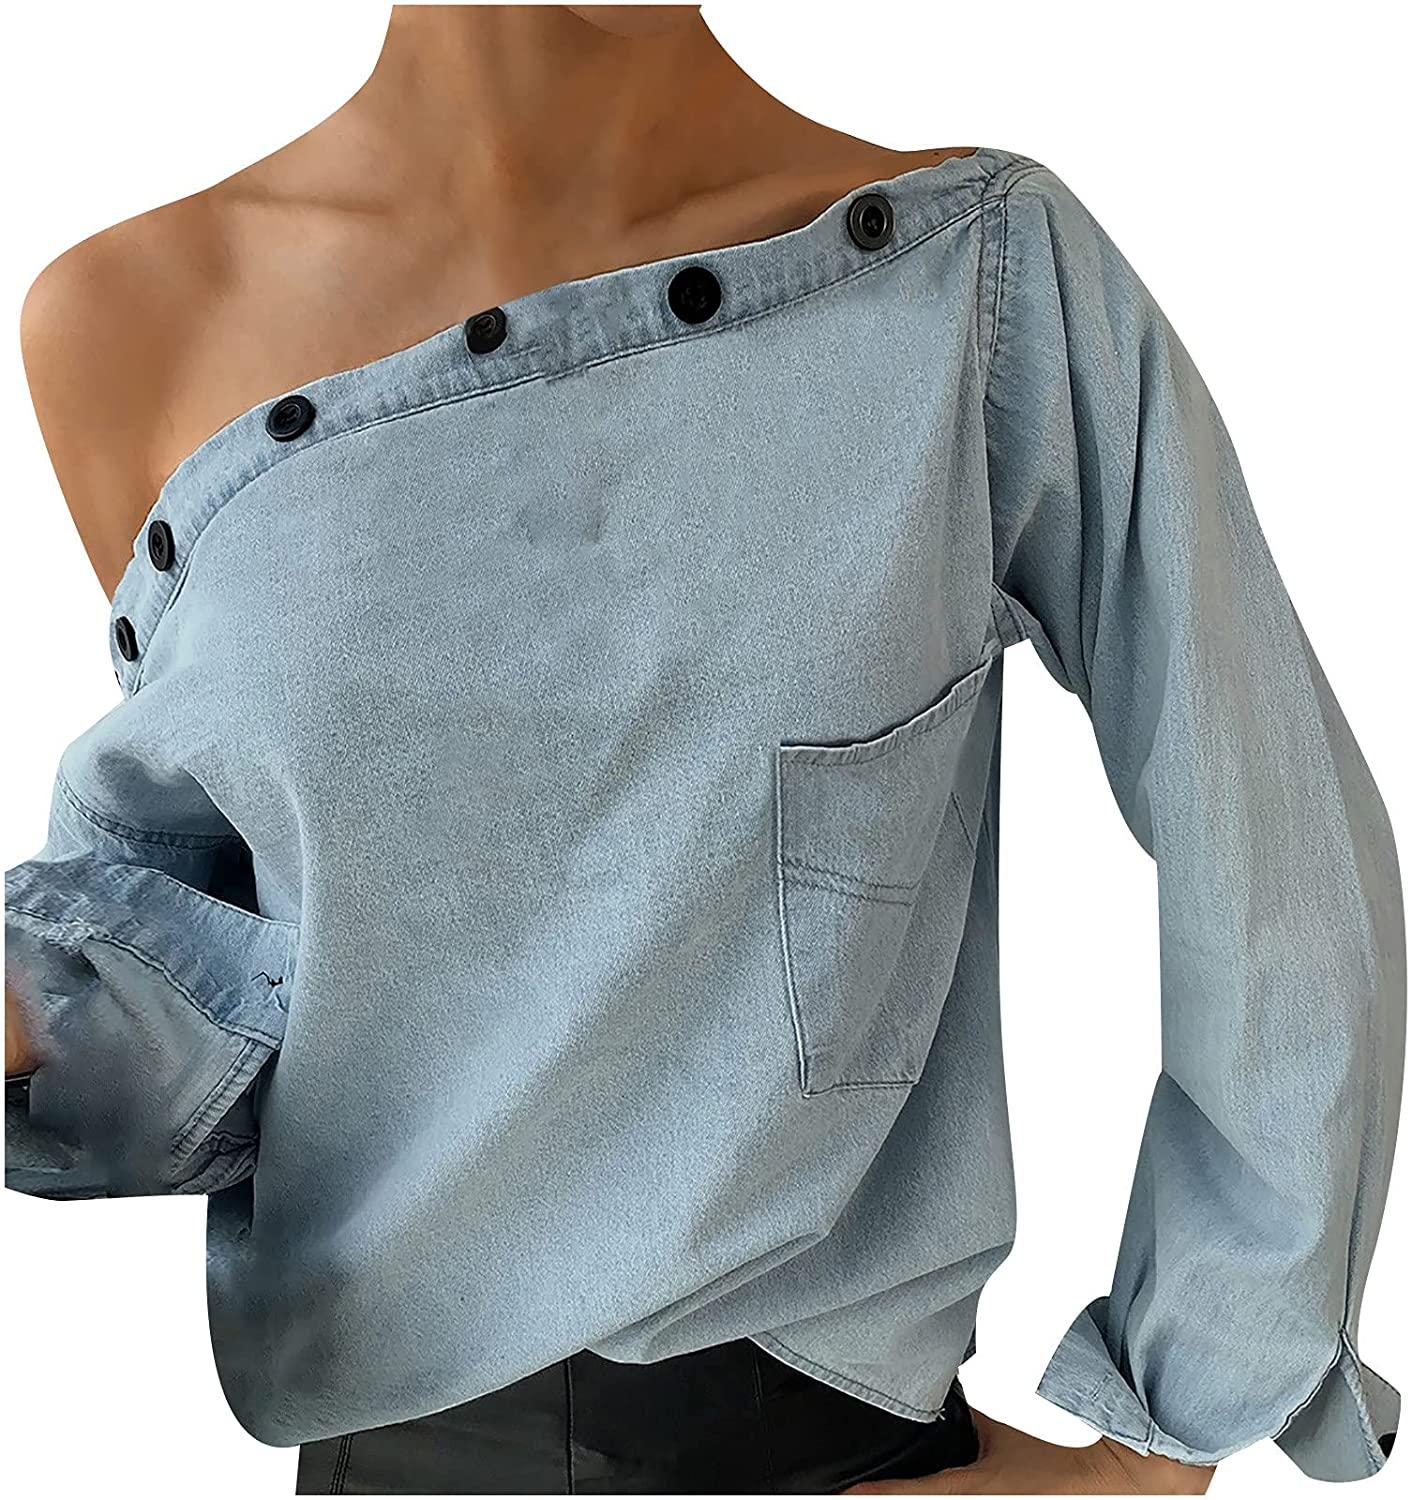 977 Sexy Women's Off Shoulder Tops Long Sleeved Button Denim T-Shirt Sweatshirts Solid Casual Loose Blouses